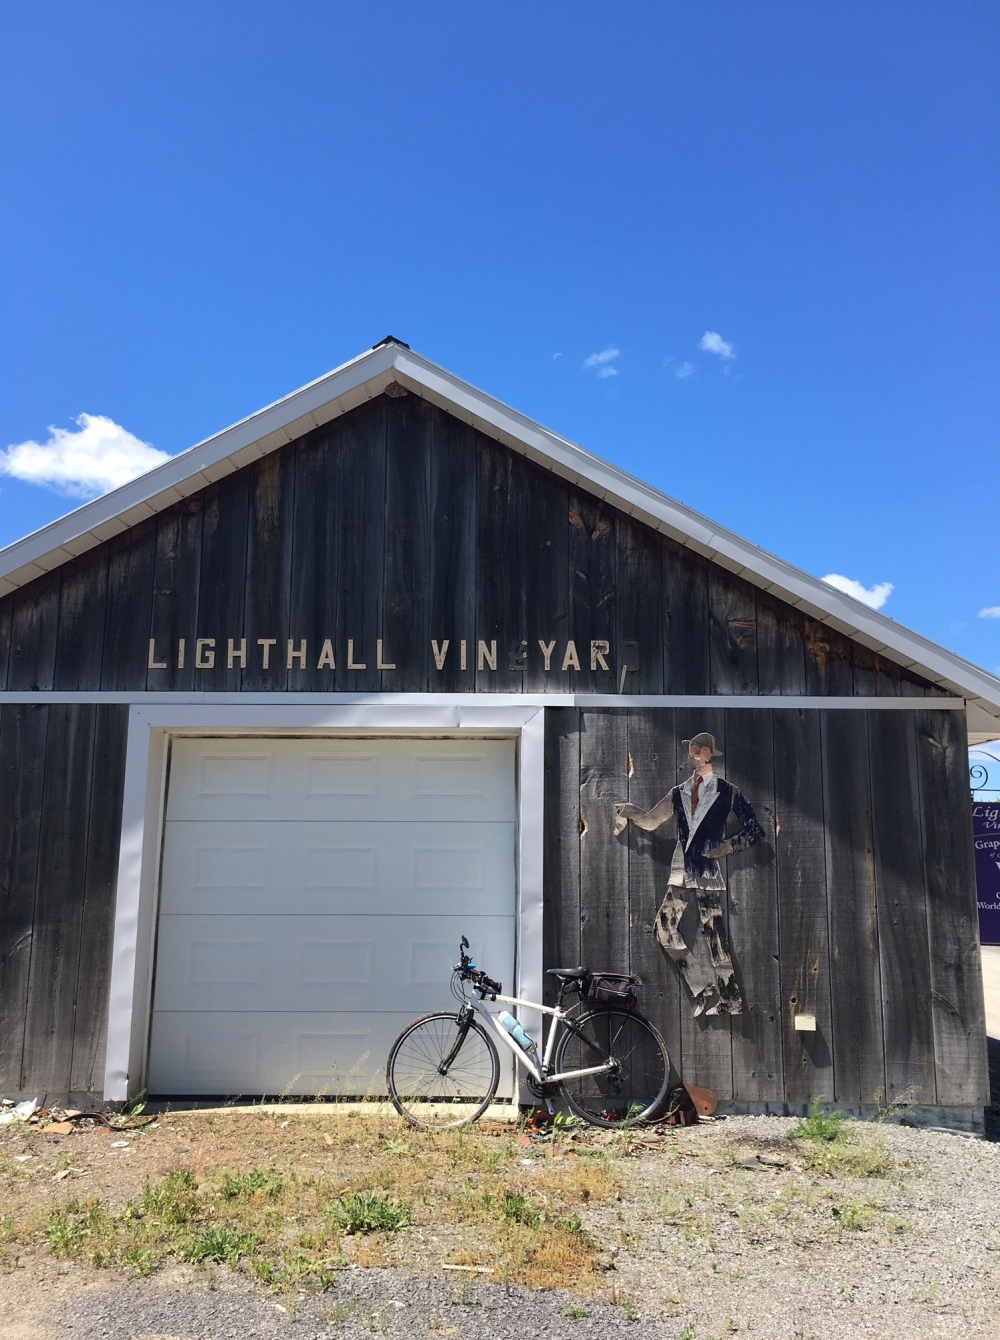 Cathy Doyle - Lighthall Vineyards